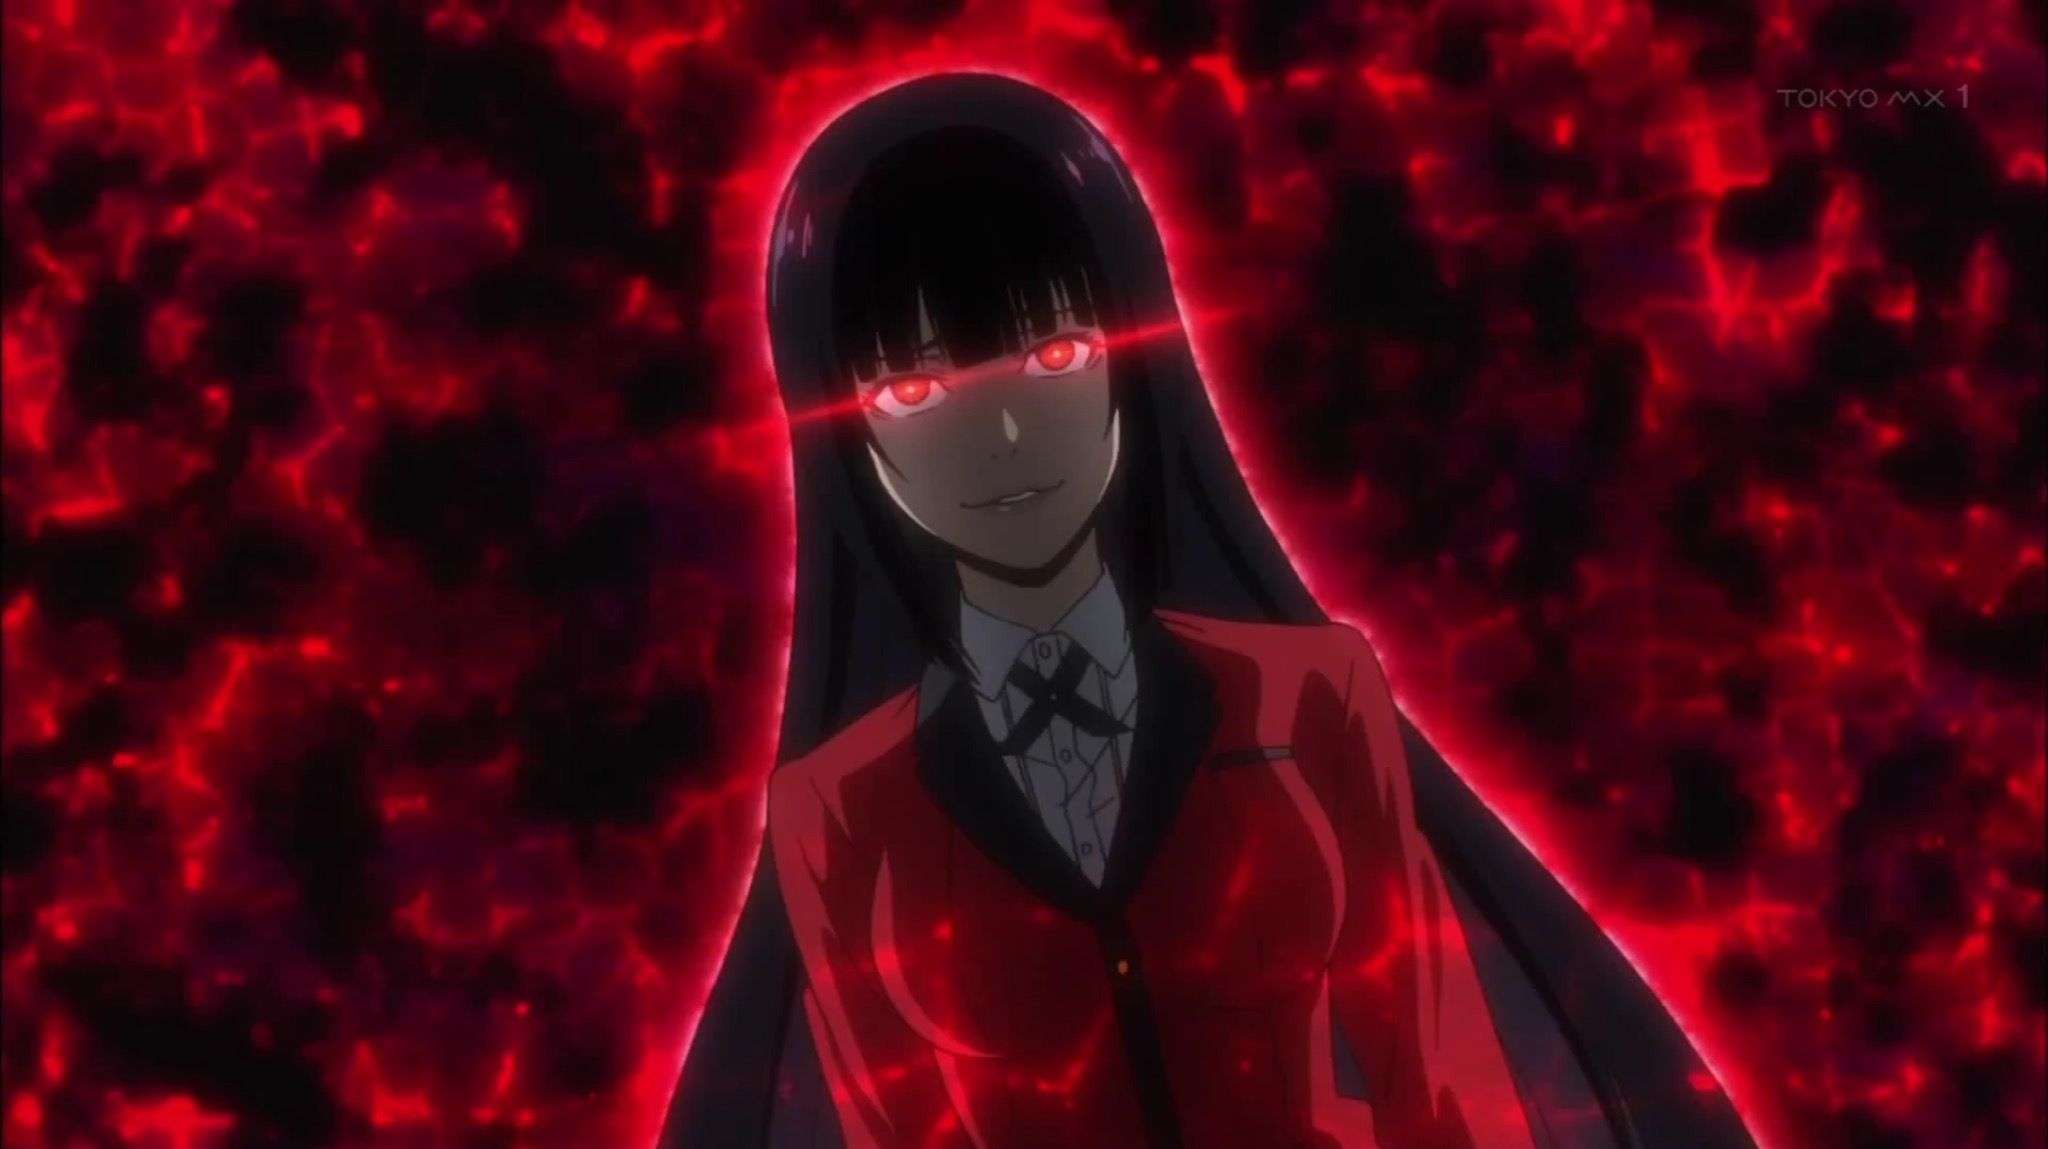 More like She-will-eat-you-alive face of Yumeko